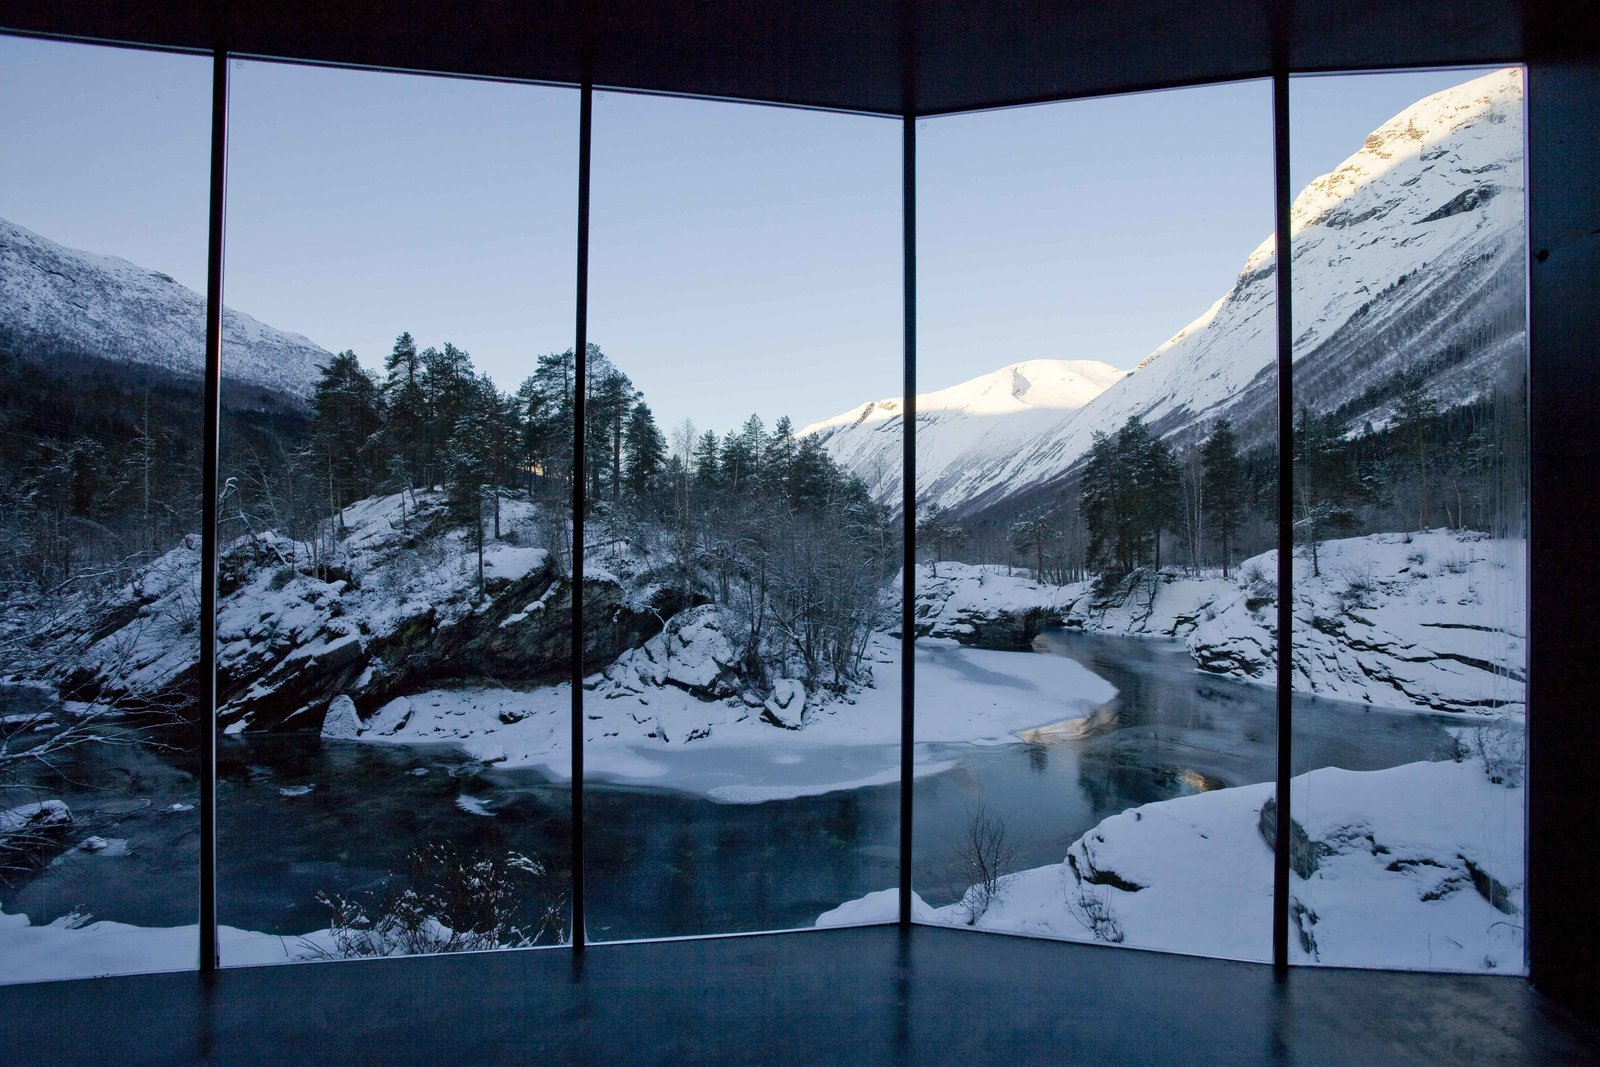 Rustic Cabins Comprise This Impossibly Idyllic Hotel in Norway